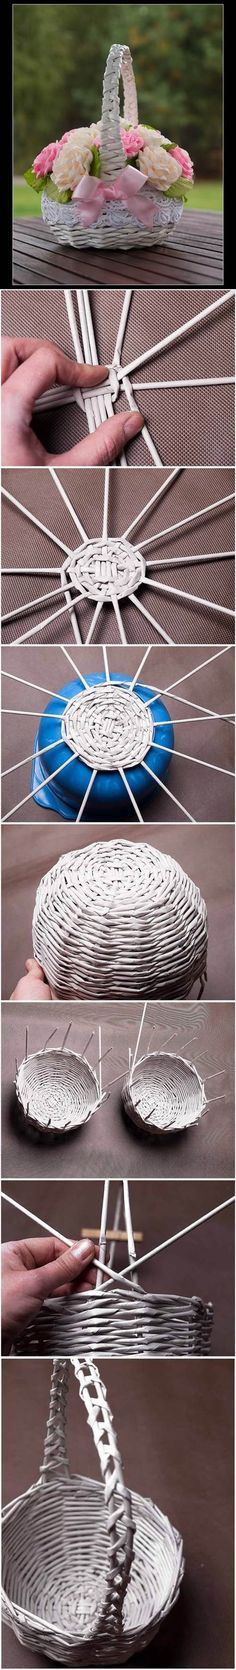 DIY Newspaper Tubes Weaving Basket